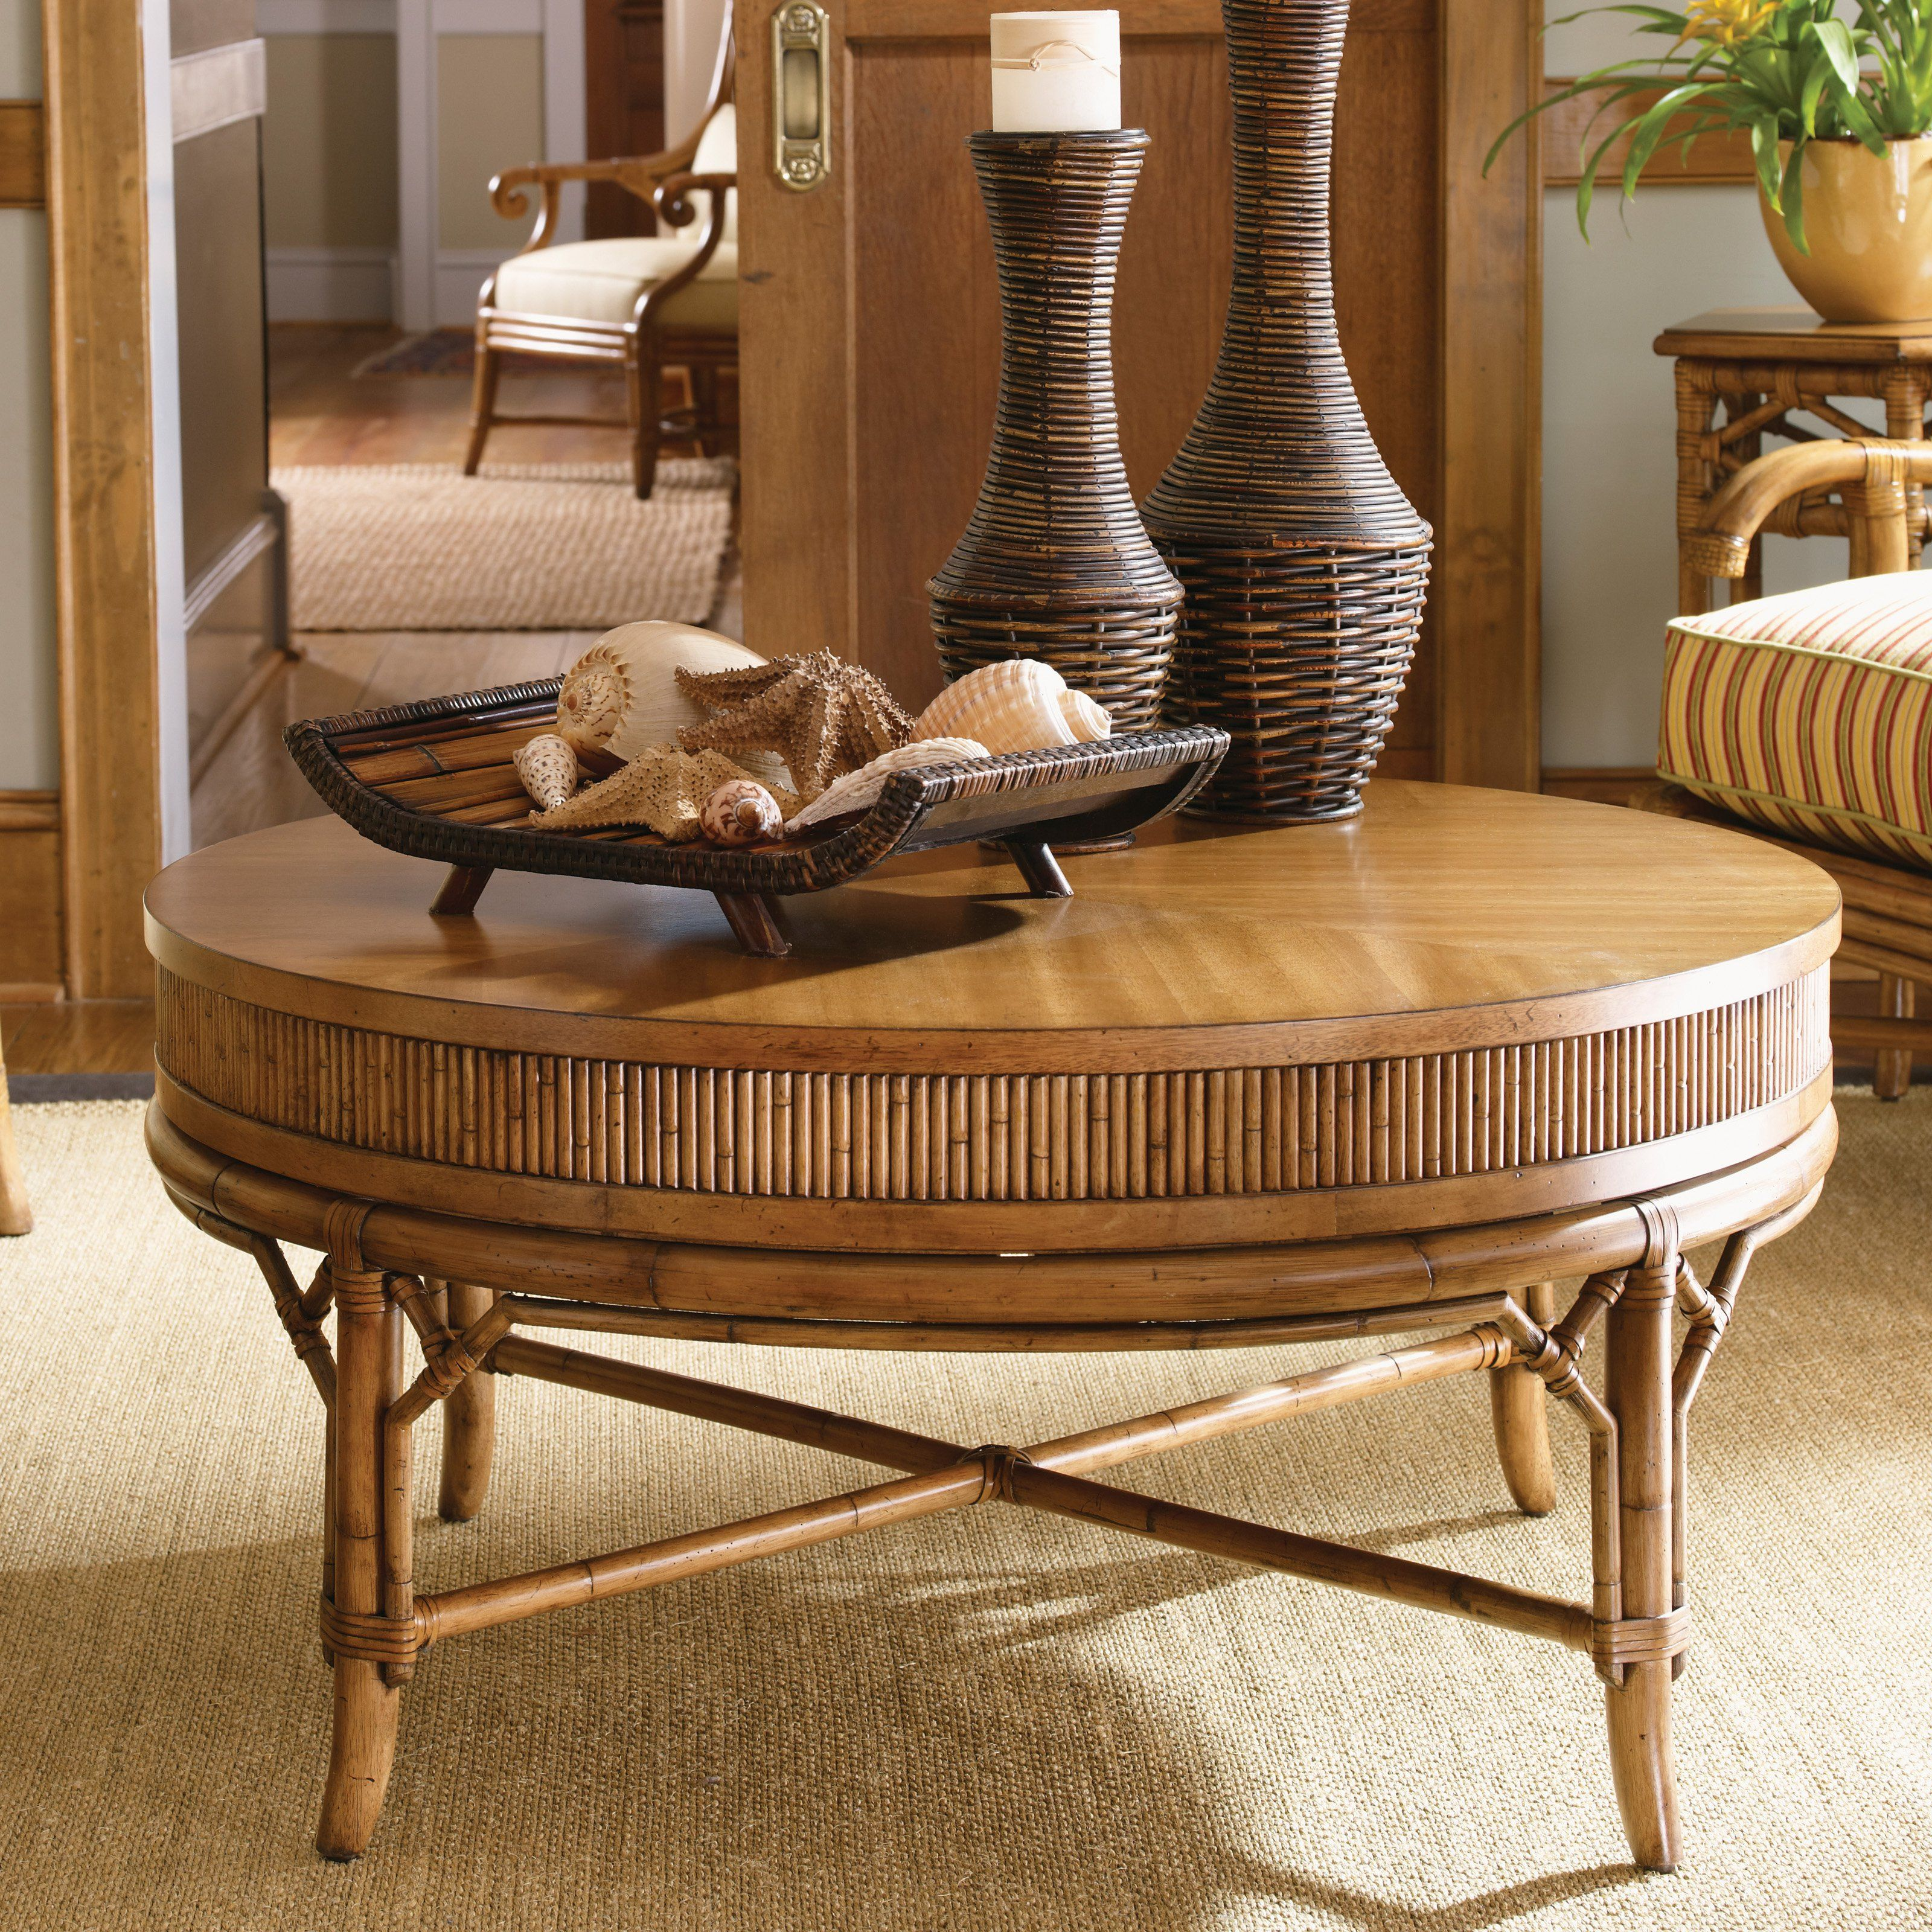 Tommy Bahama By Lexington Home Brands Beach House Oyster Cove Round Golden Umb British Colonial Style Living Room British Colonial Style Tommy Bahama Furniture [ 3200 x 3200 Pixel ]